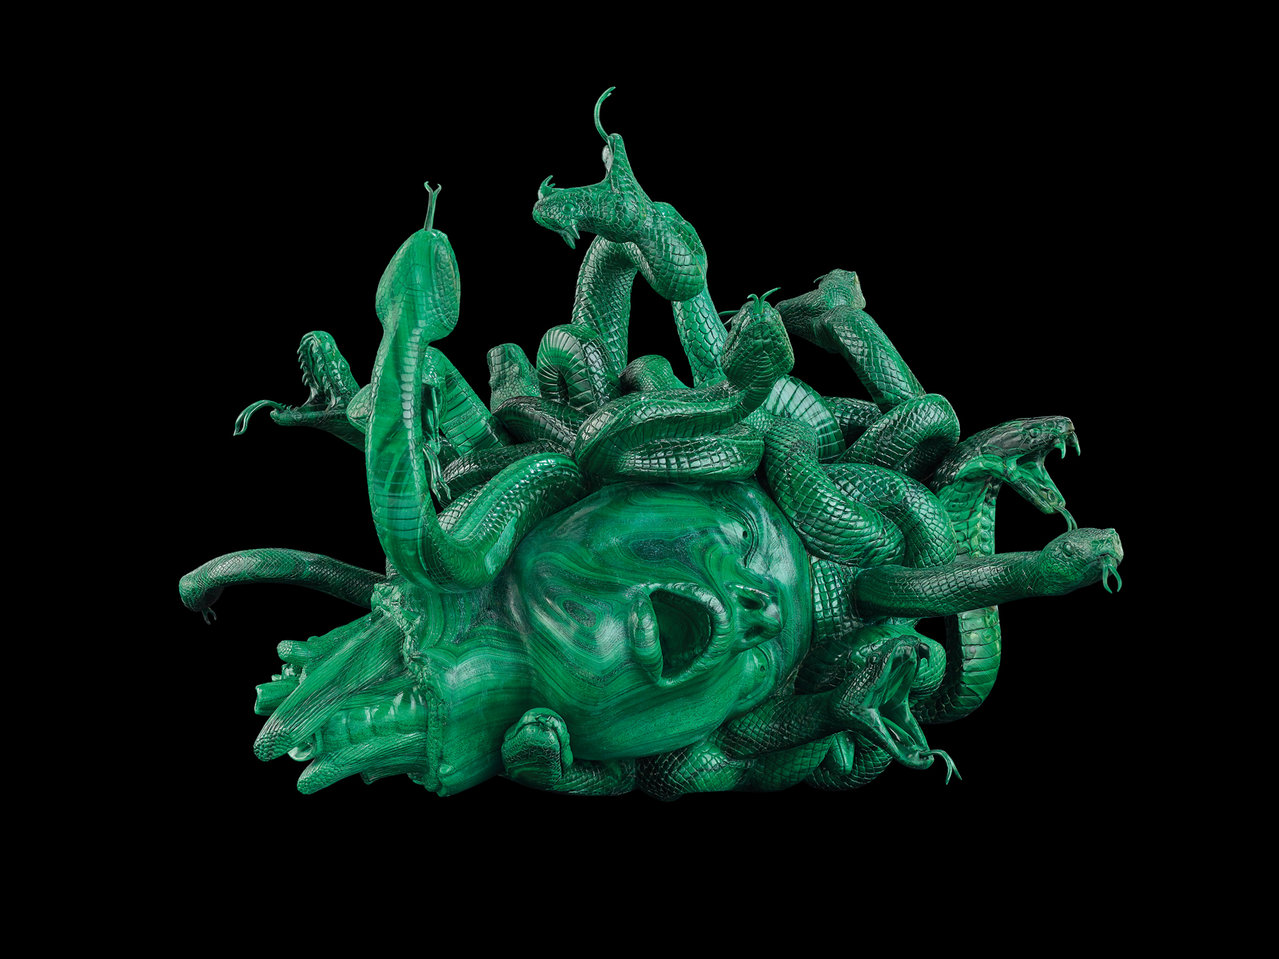 'The Severed Head of Medusa' Photographed by Prudence Cuming Associates  © Damien Hirst and Science Ltd. All rights reserved, DACS 2017